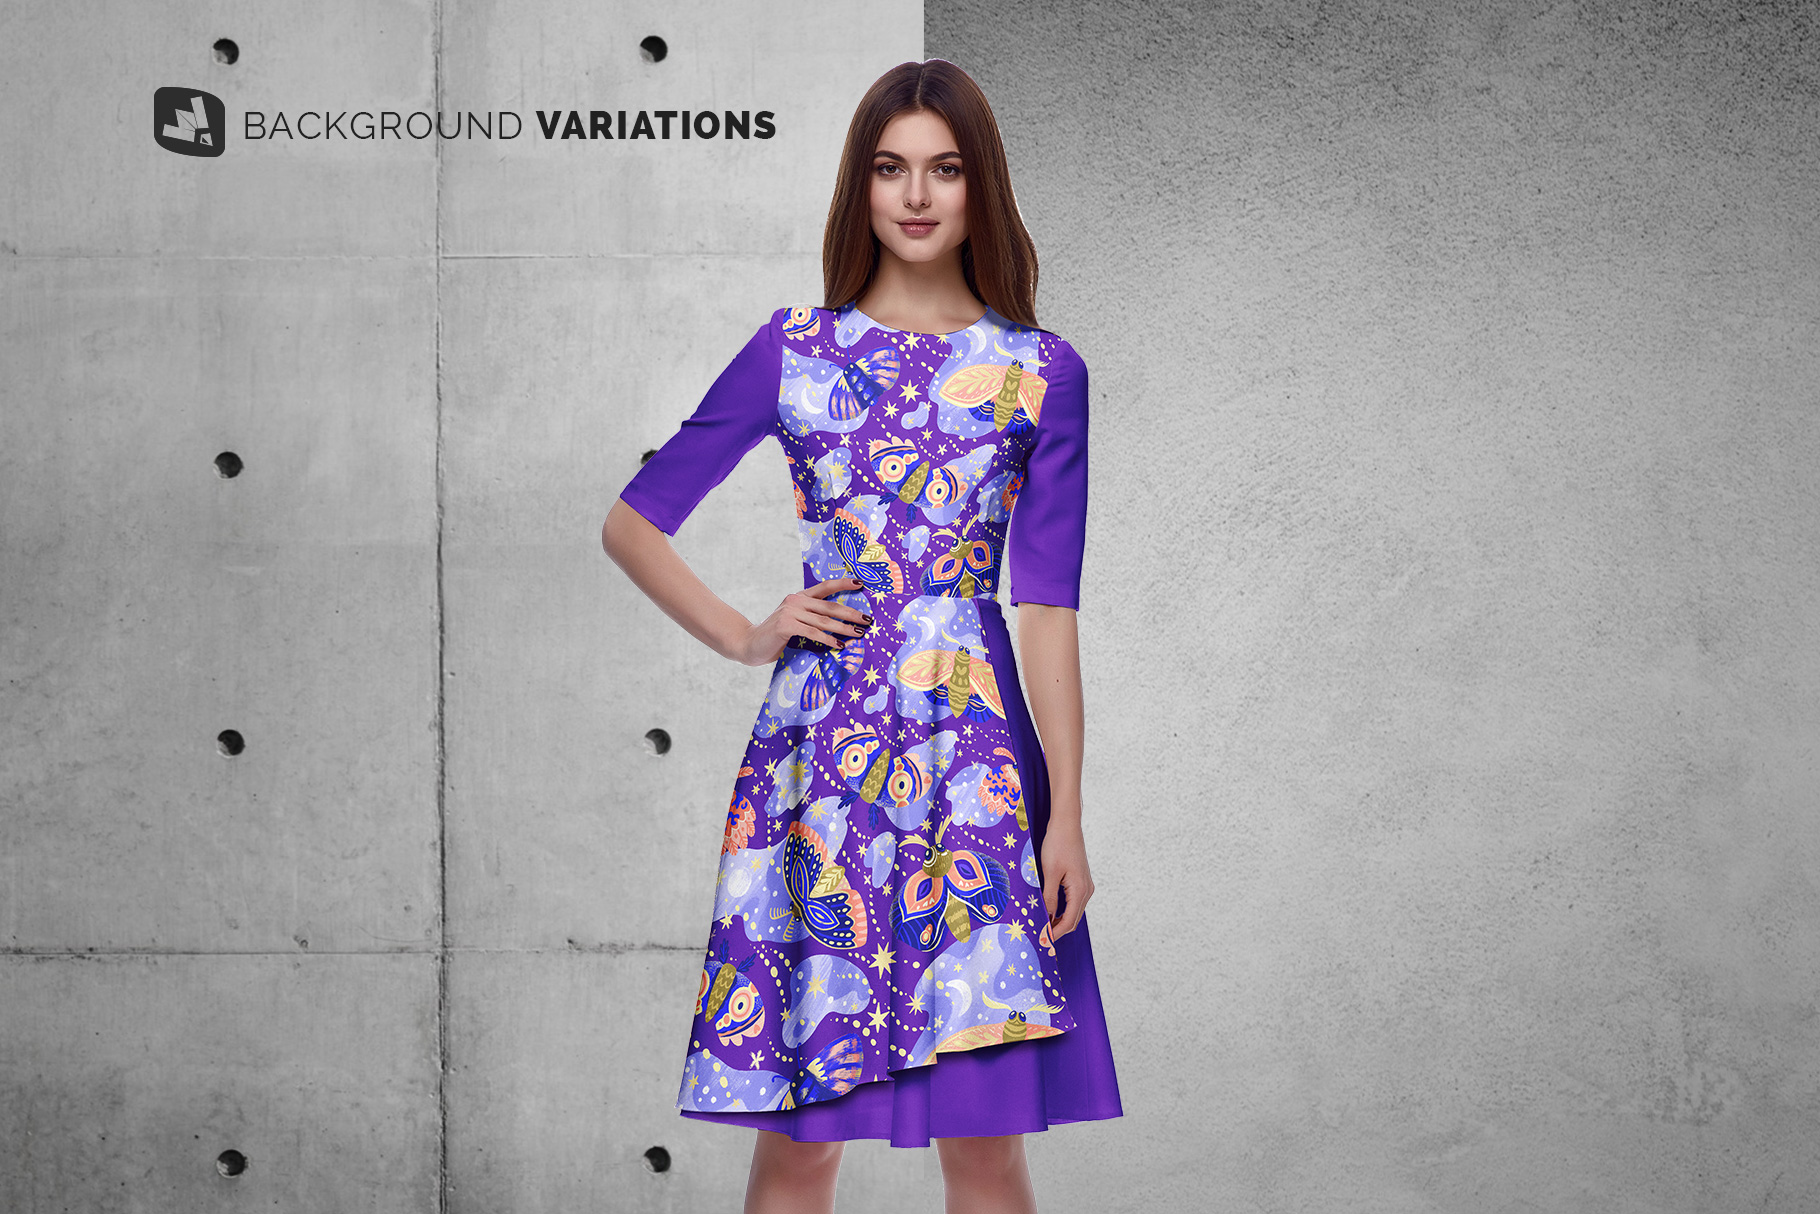 background options of the female formal dress mockup